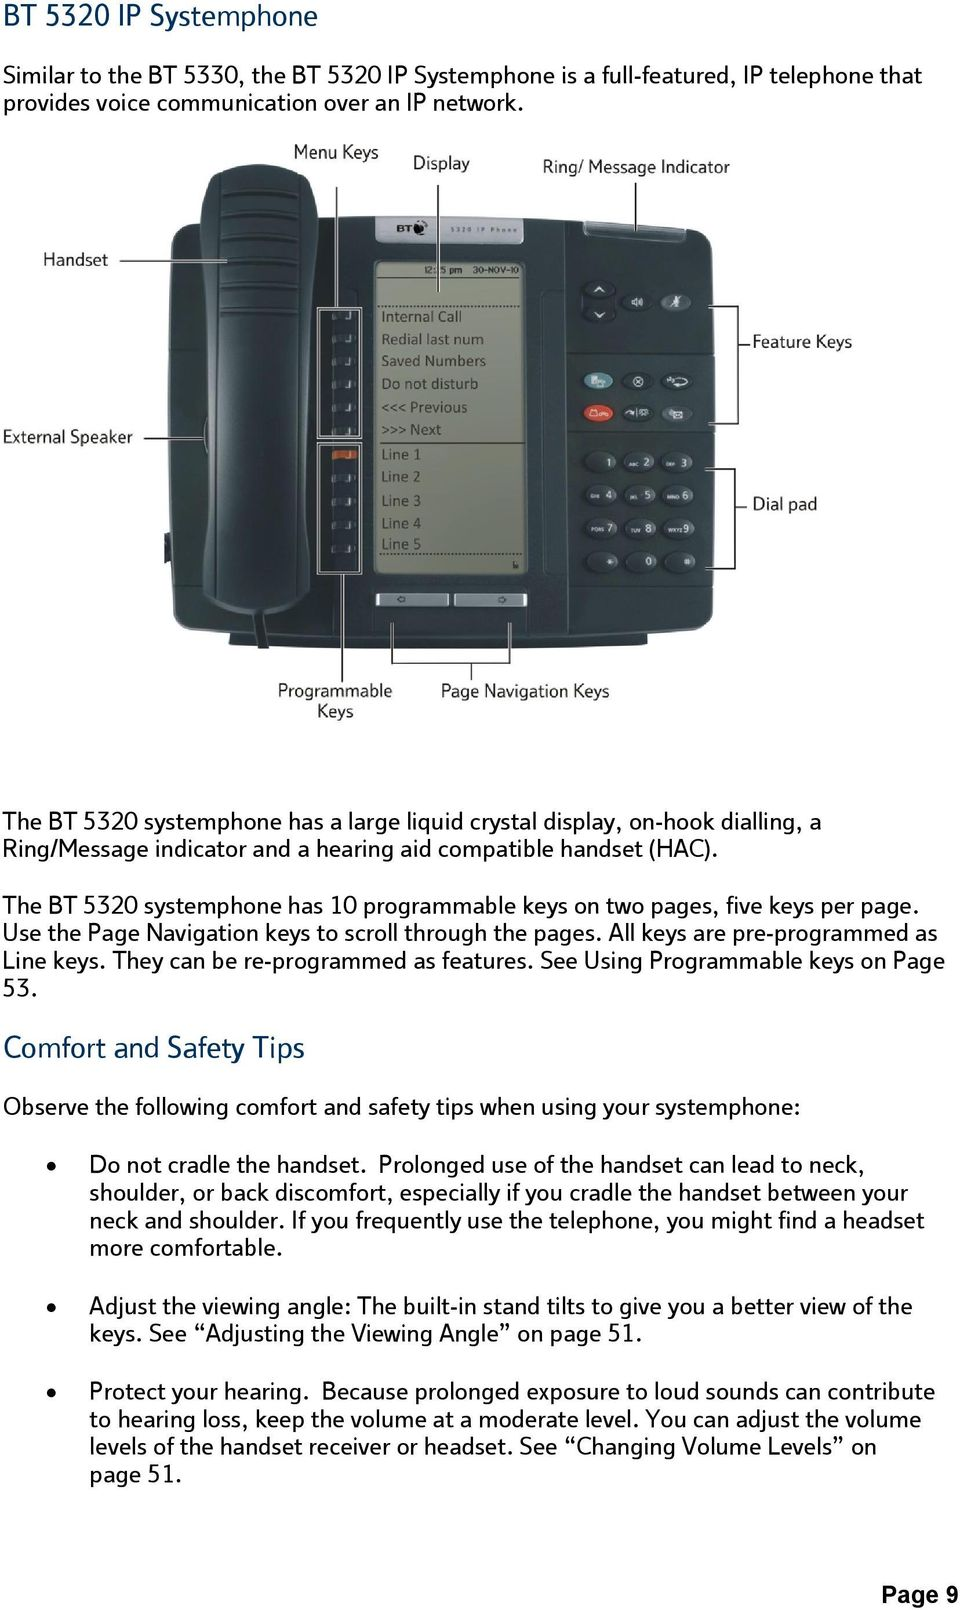 The BT 5320 systemphone has 10 programmable keys on two pages, five keys per page. Use the Page Navigation keys to scroll through the pages. All keys are pre-programmed as Line keys.